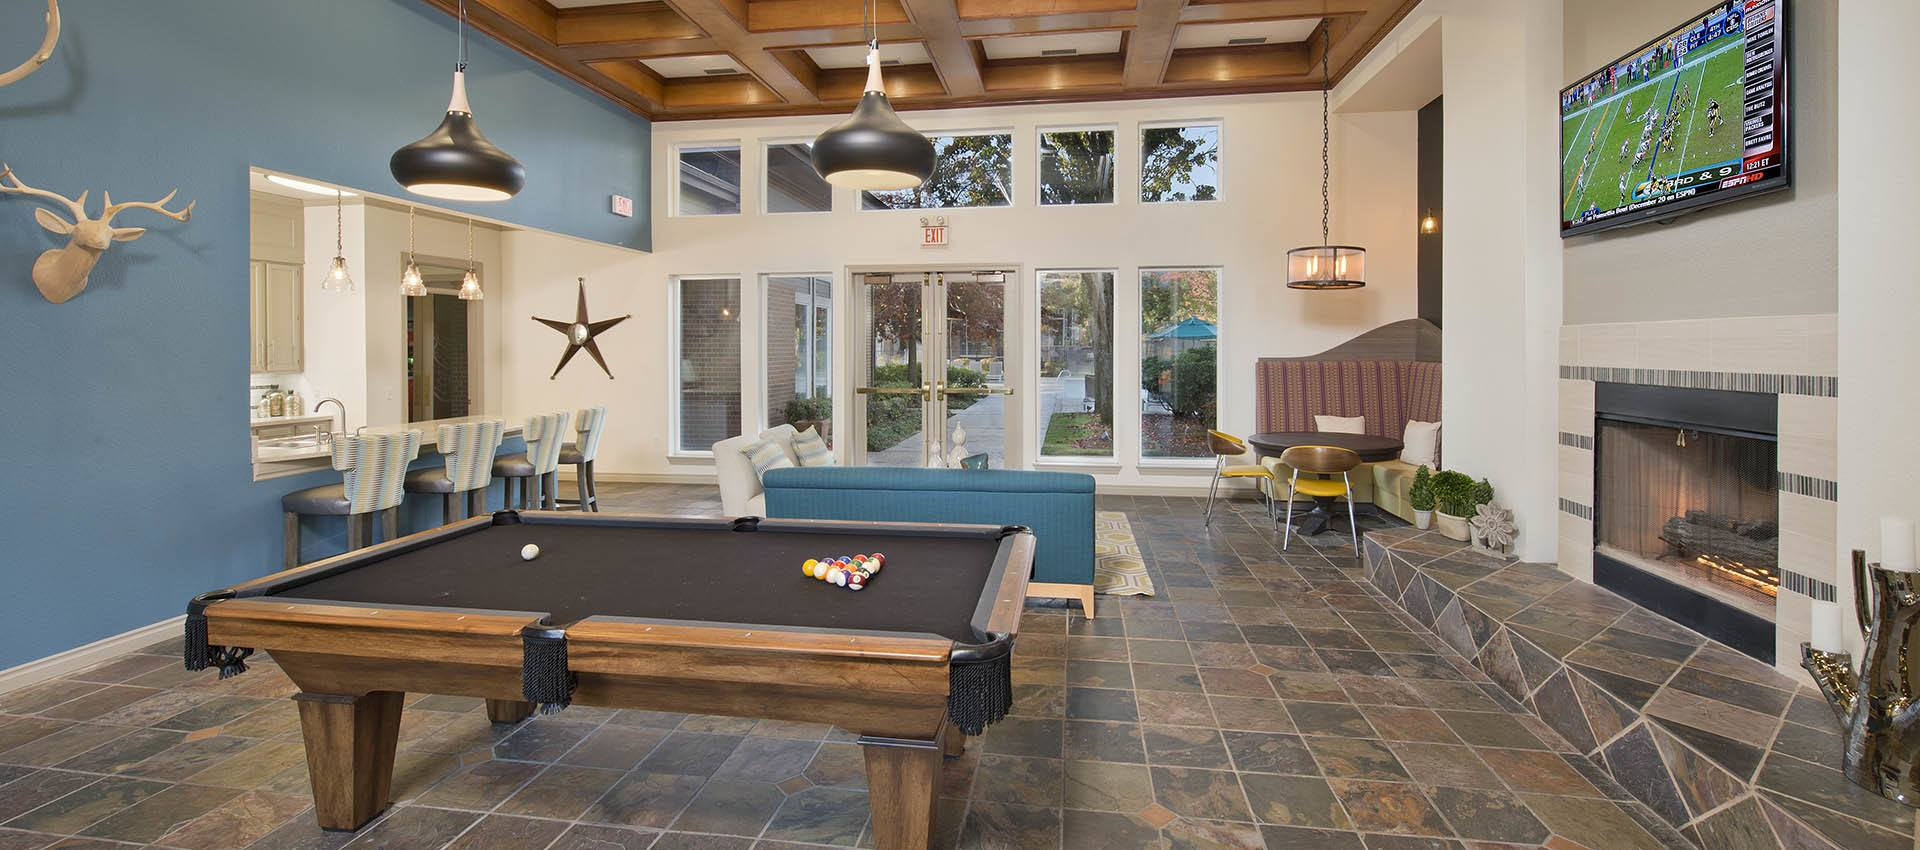 Clubhouse with Billiards at Cortland Village Apartment Homes in Hillsboro